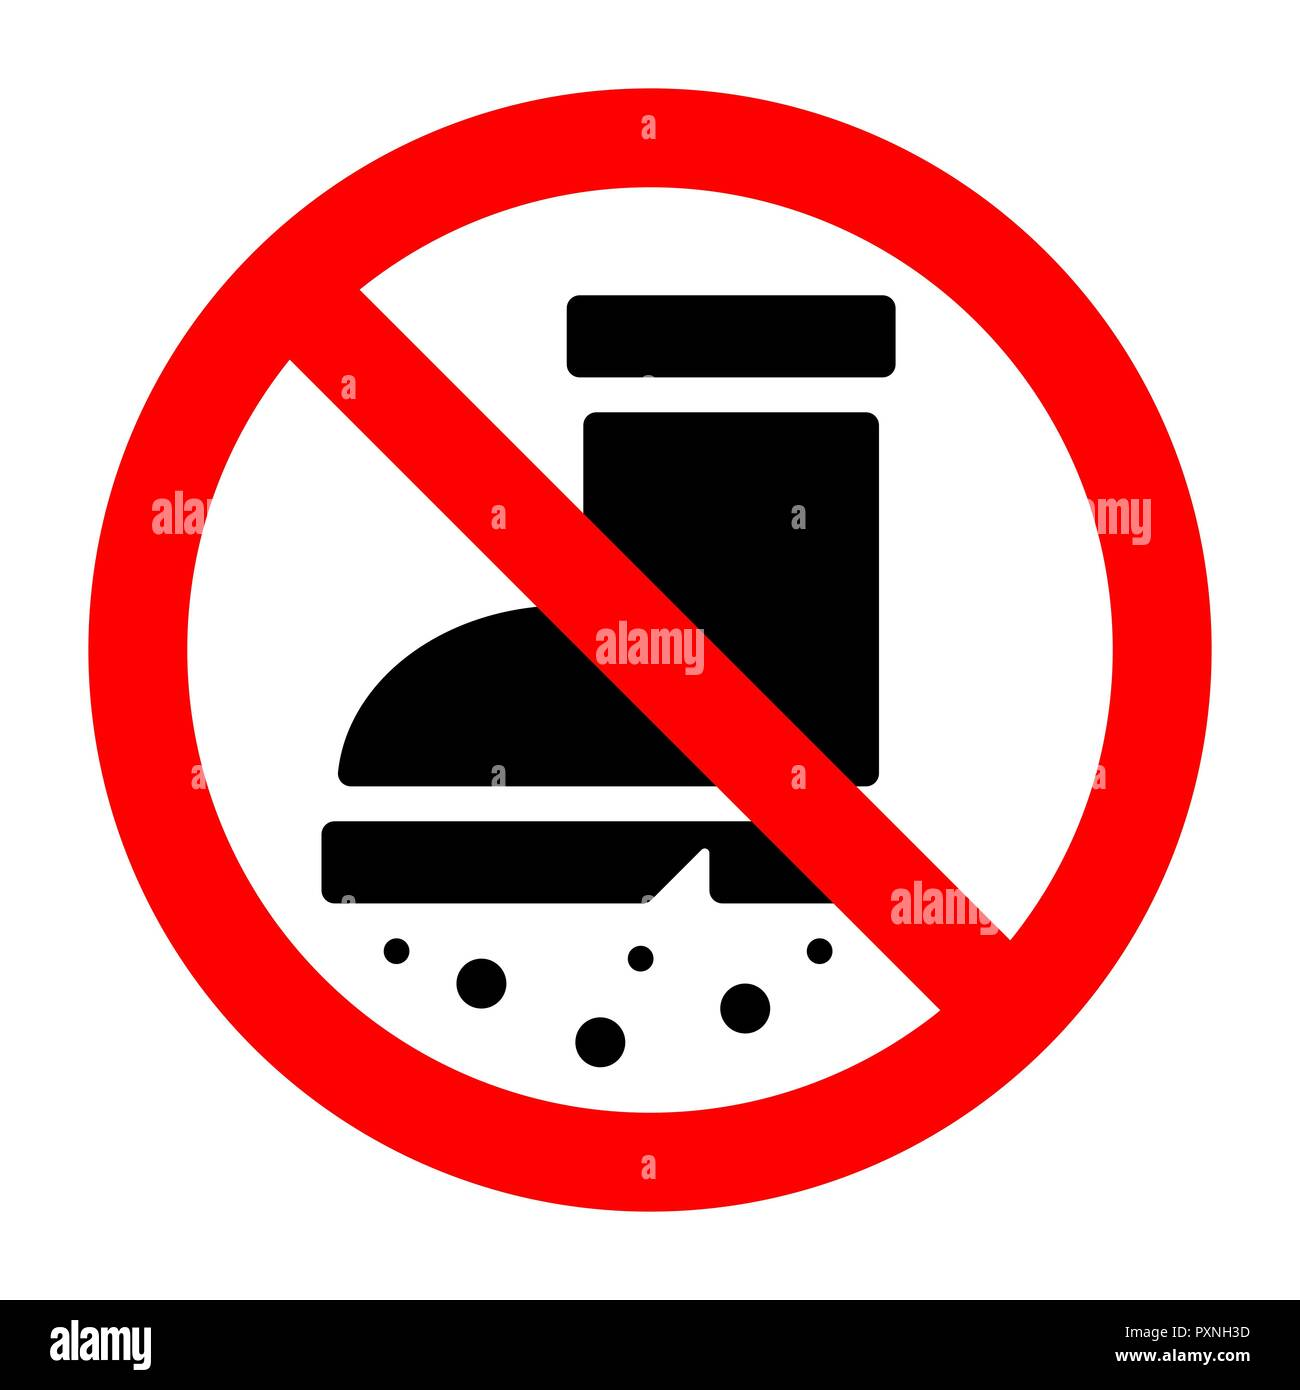 graphic about Please Remove Your Shoes Sign Printable Free named Make sure you Take out Your Footwear Inventory Images Make sure you Take out Your